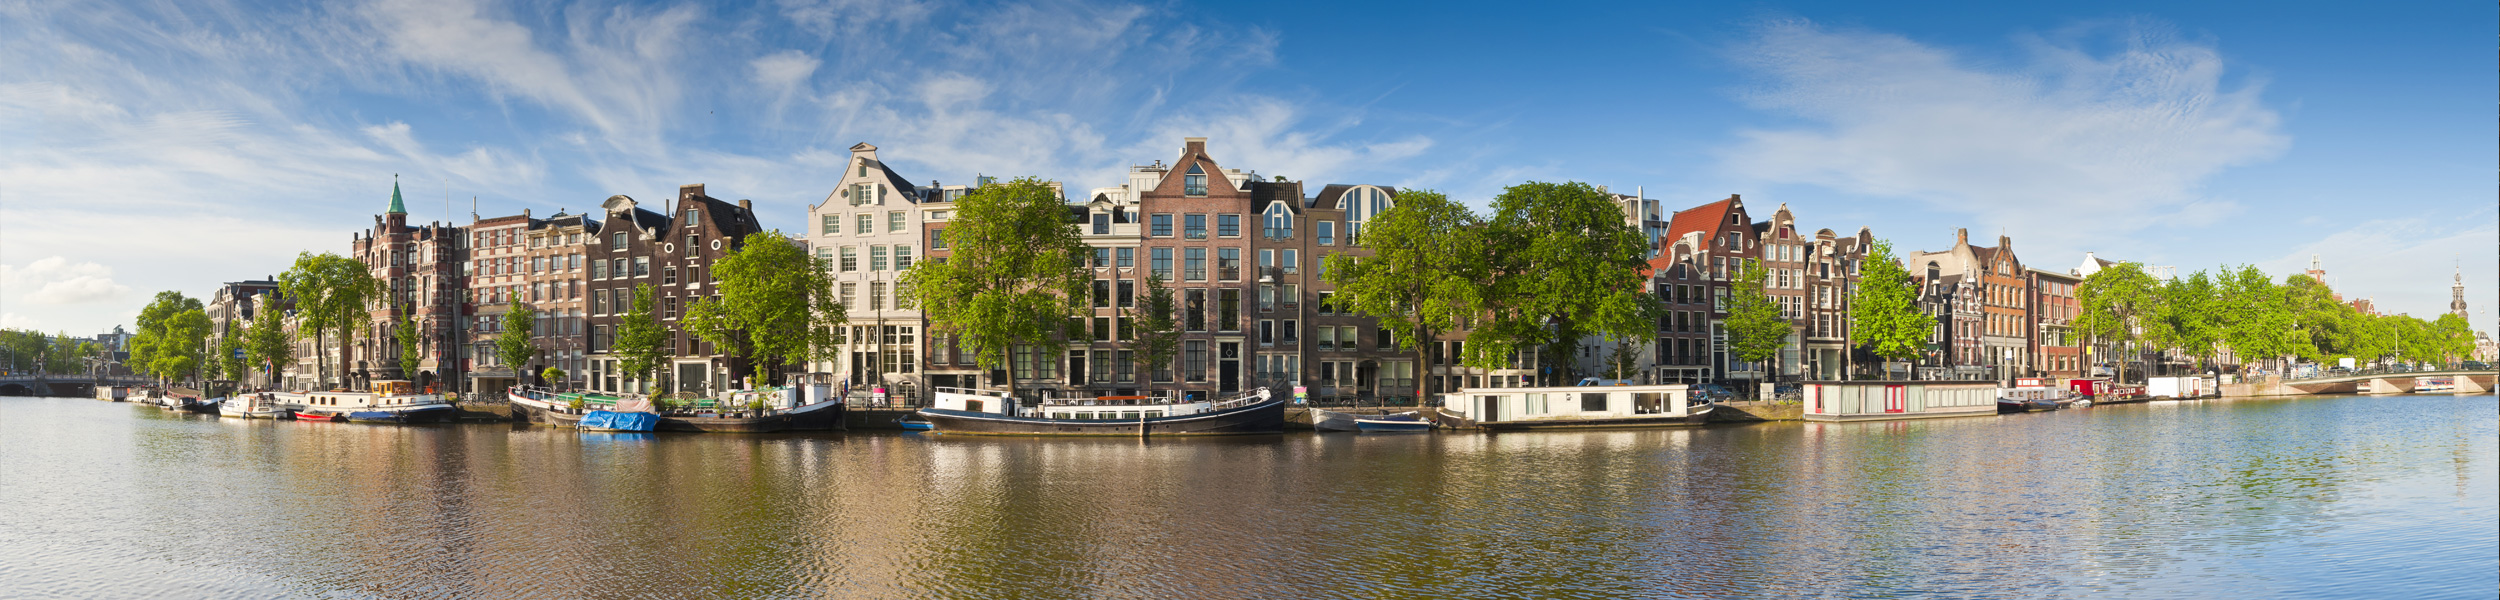 Senior Data Engineer Amsterdam, the Netherlands